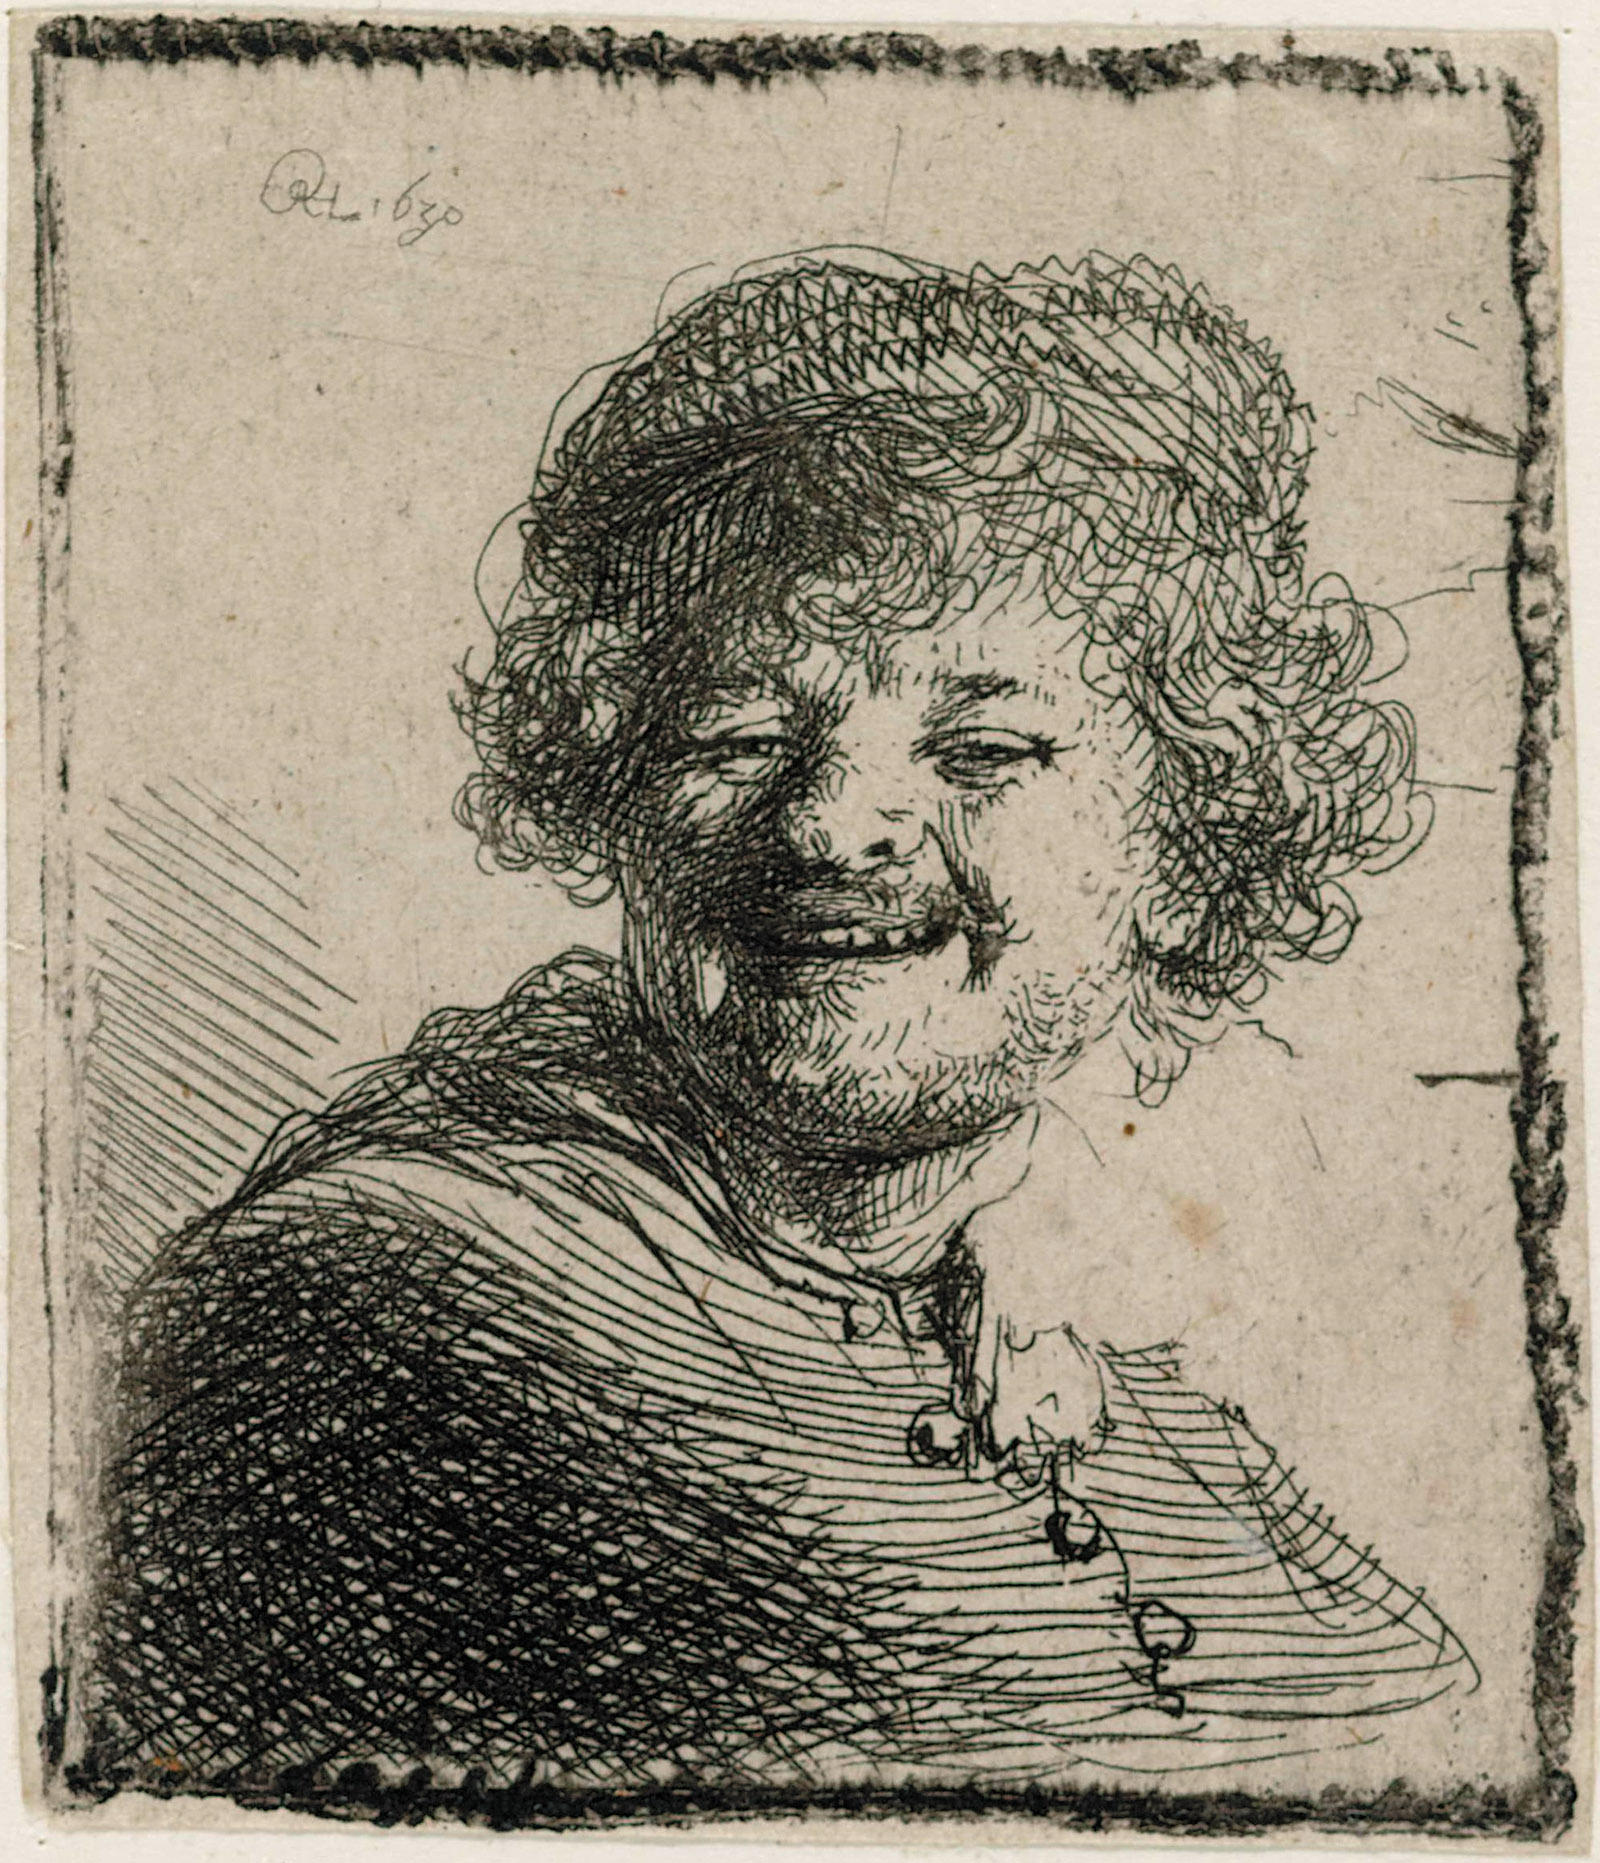 Rembrandt: Self-Portrait in a Cap: Laughing, 1630